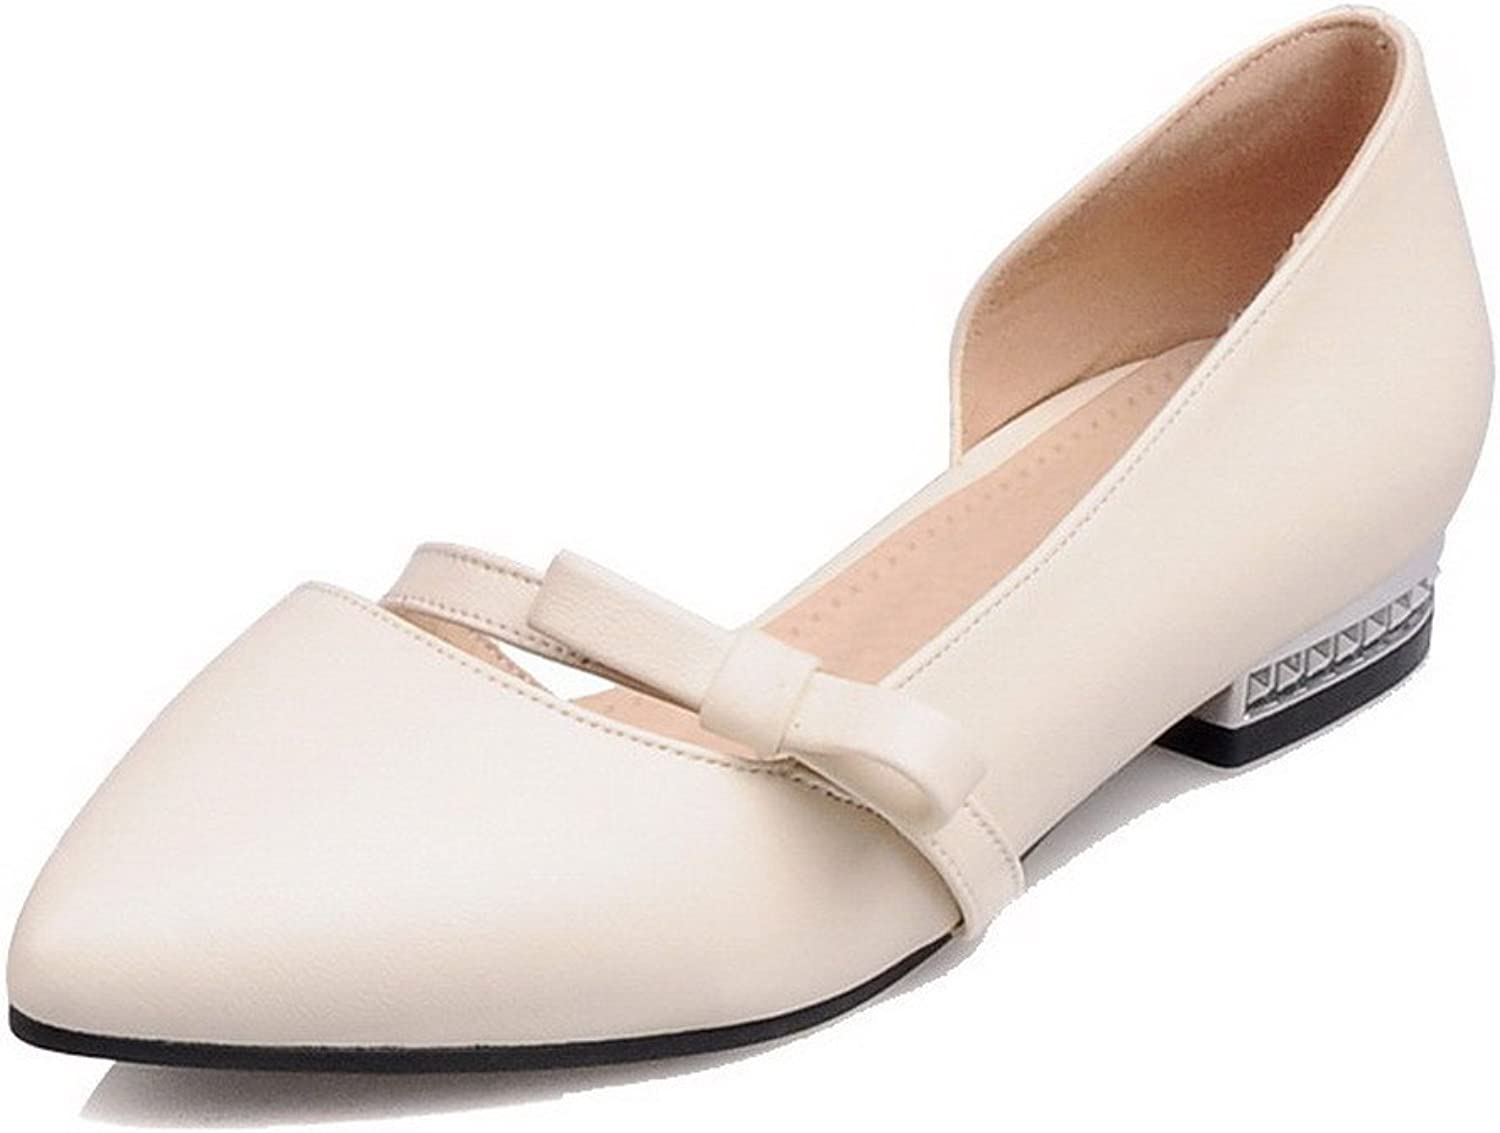 AmoonyFashion Women's Pull-On PU Closed-Toe Low-Heels Solid Pumps-shoes